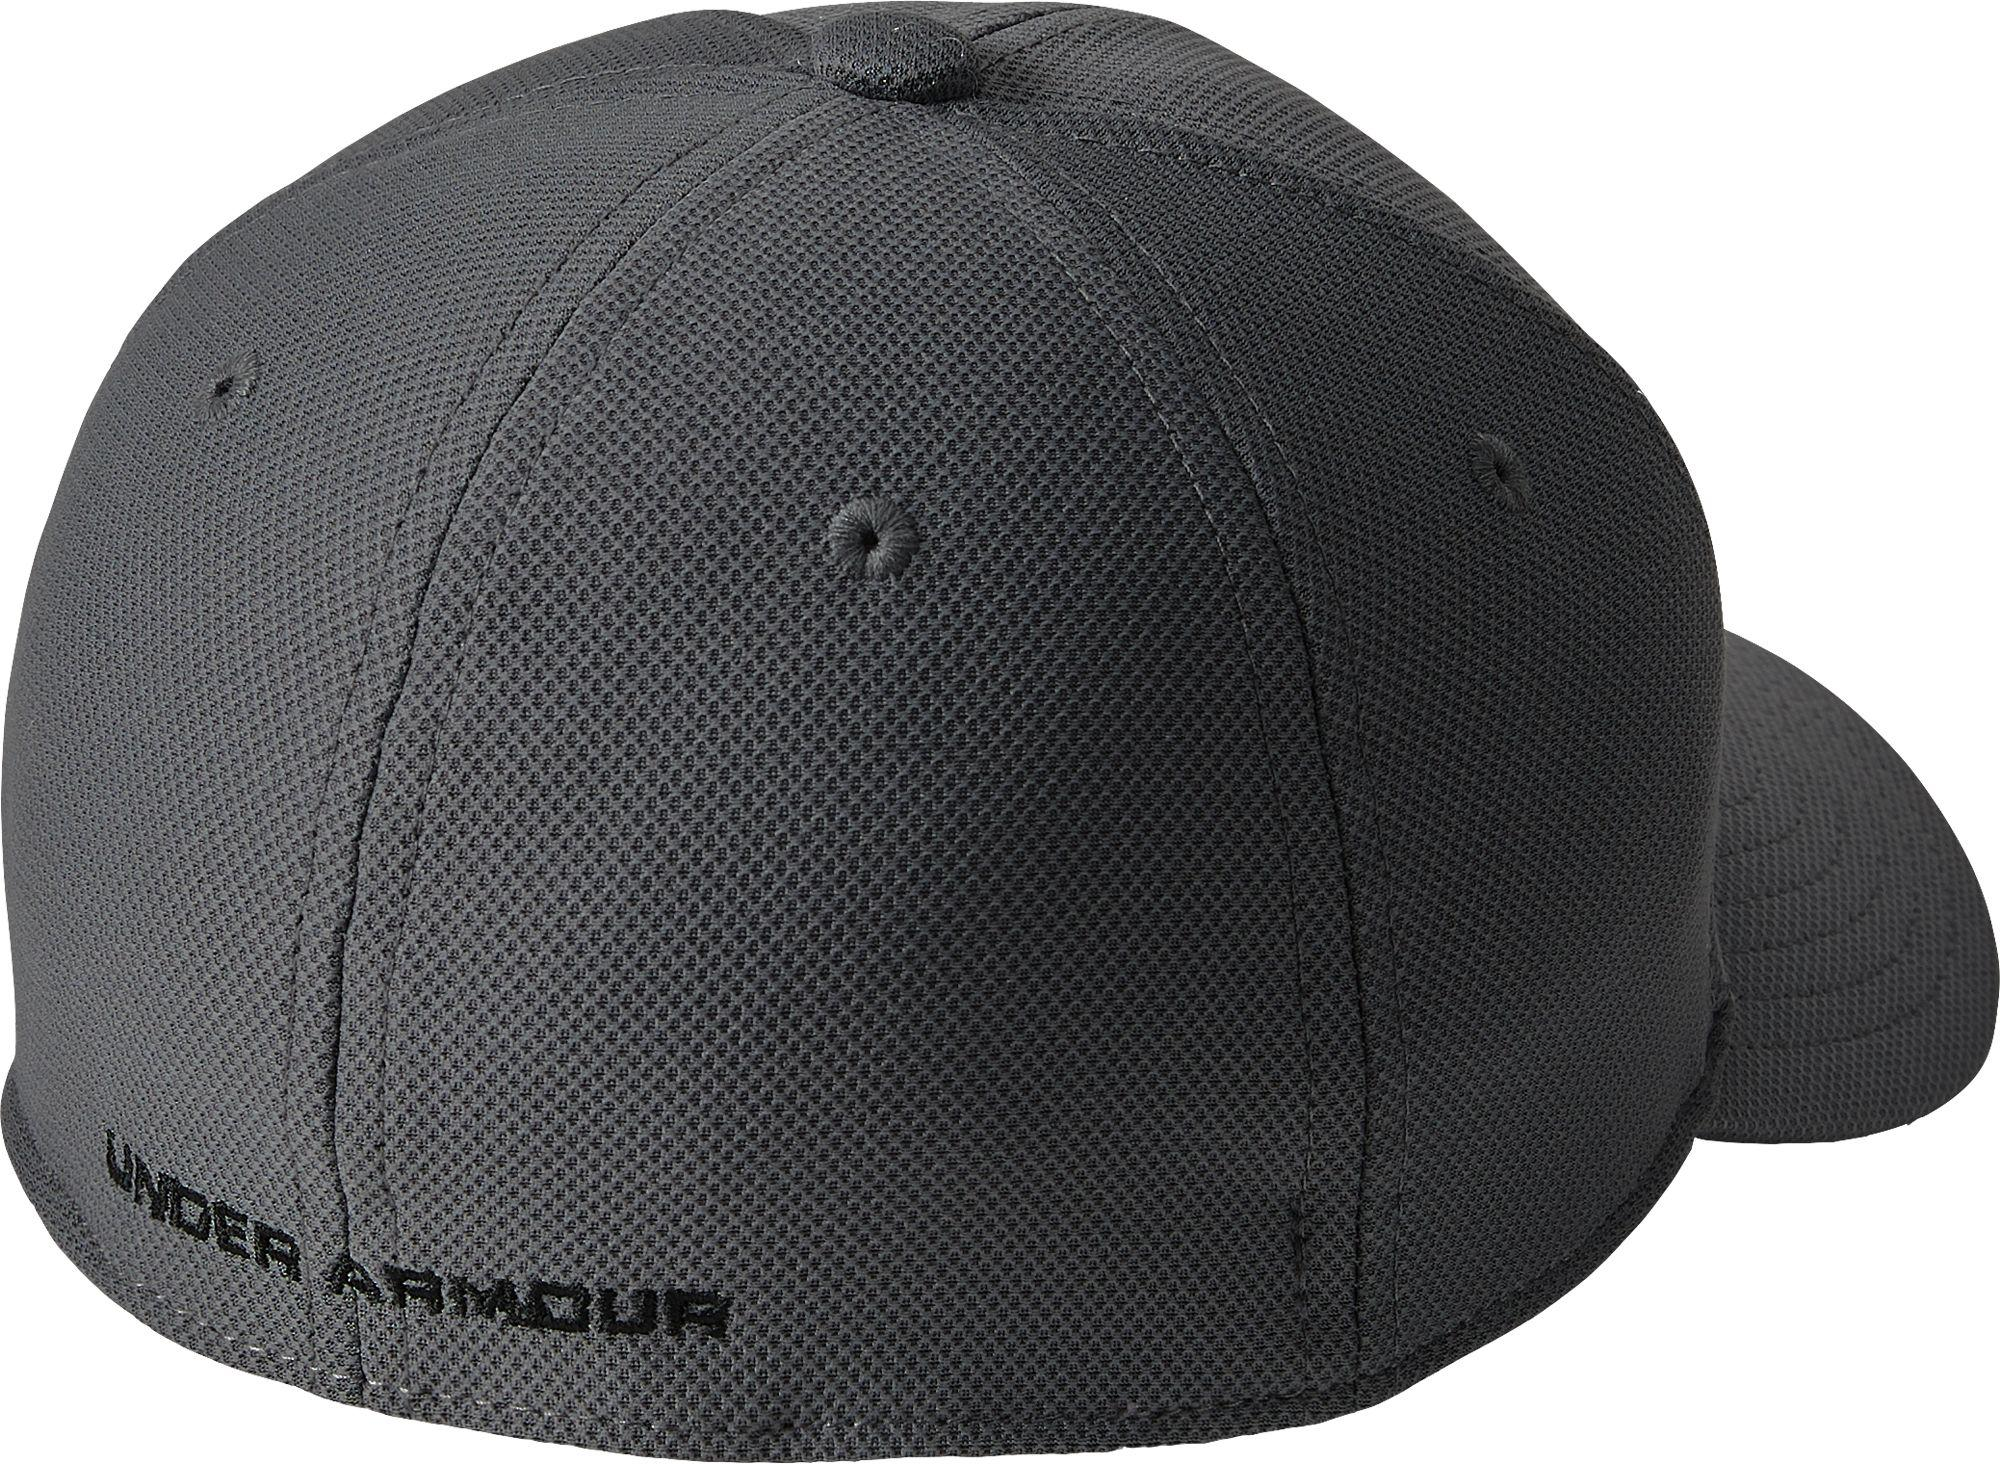 b24b3dff27ba3 Lyst - Under Armour Oys  Blitzing 3.0 Hat in Gray for Men